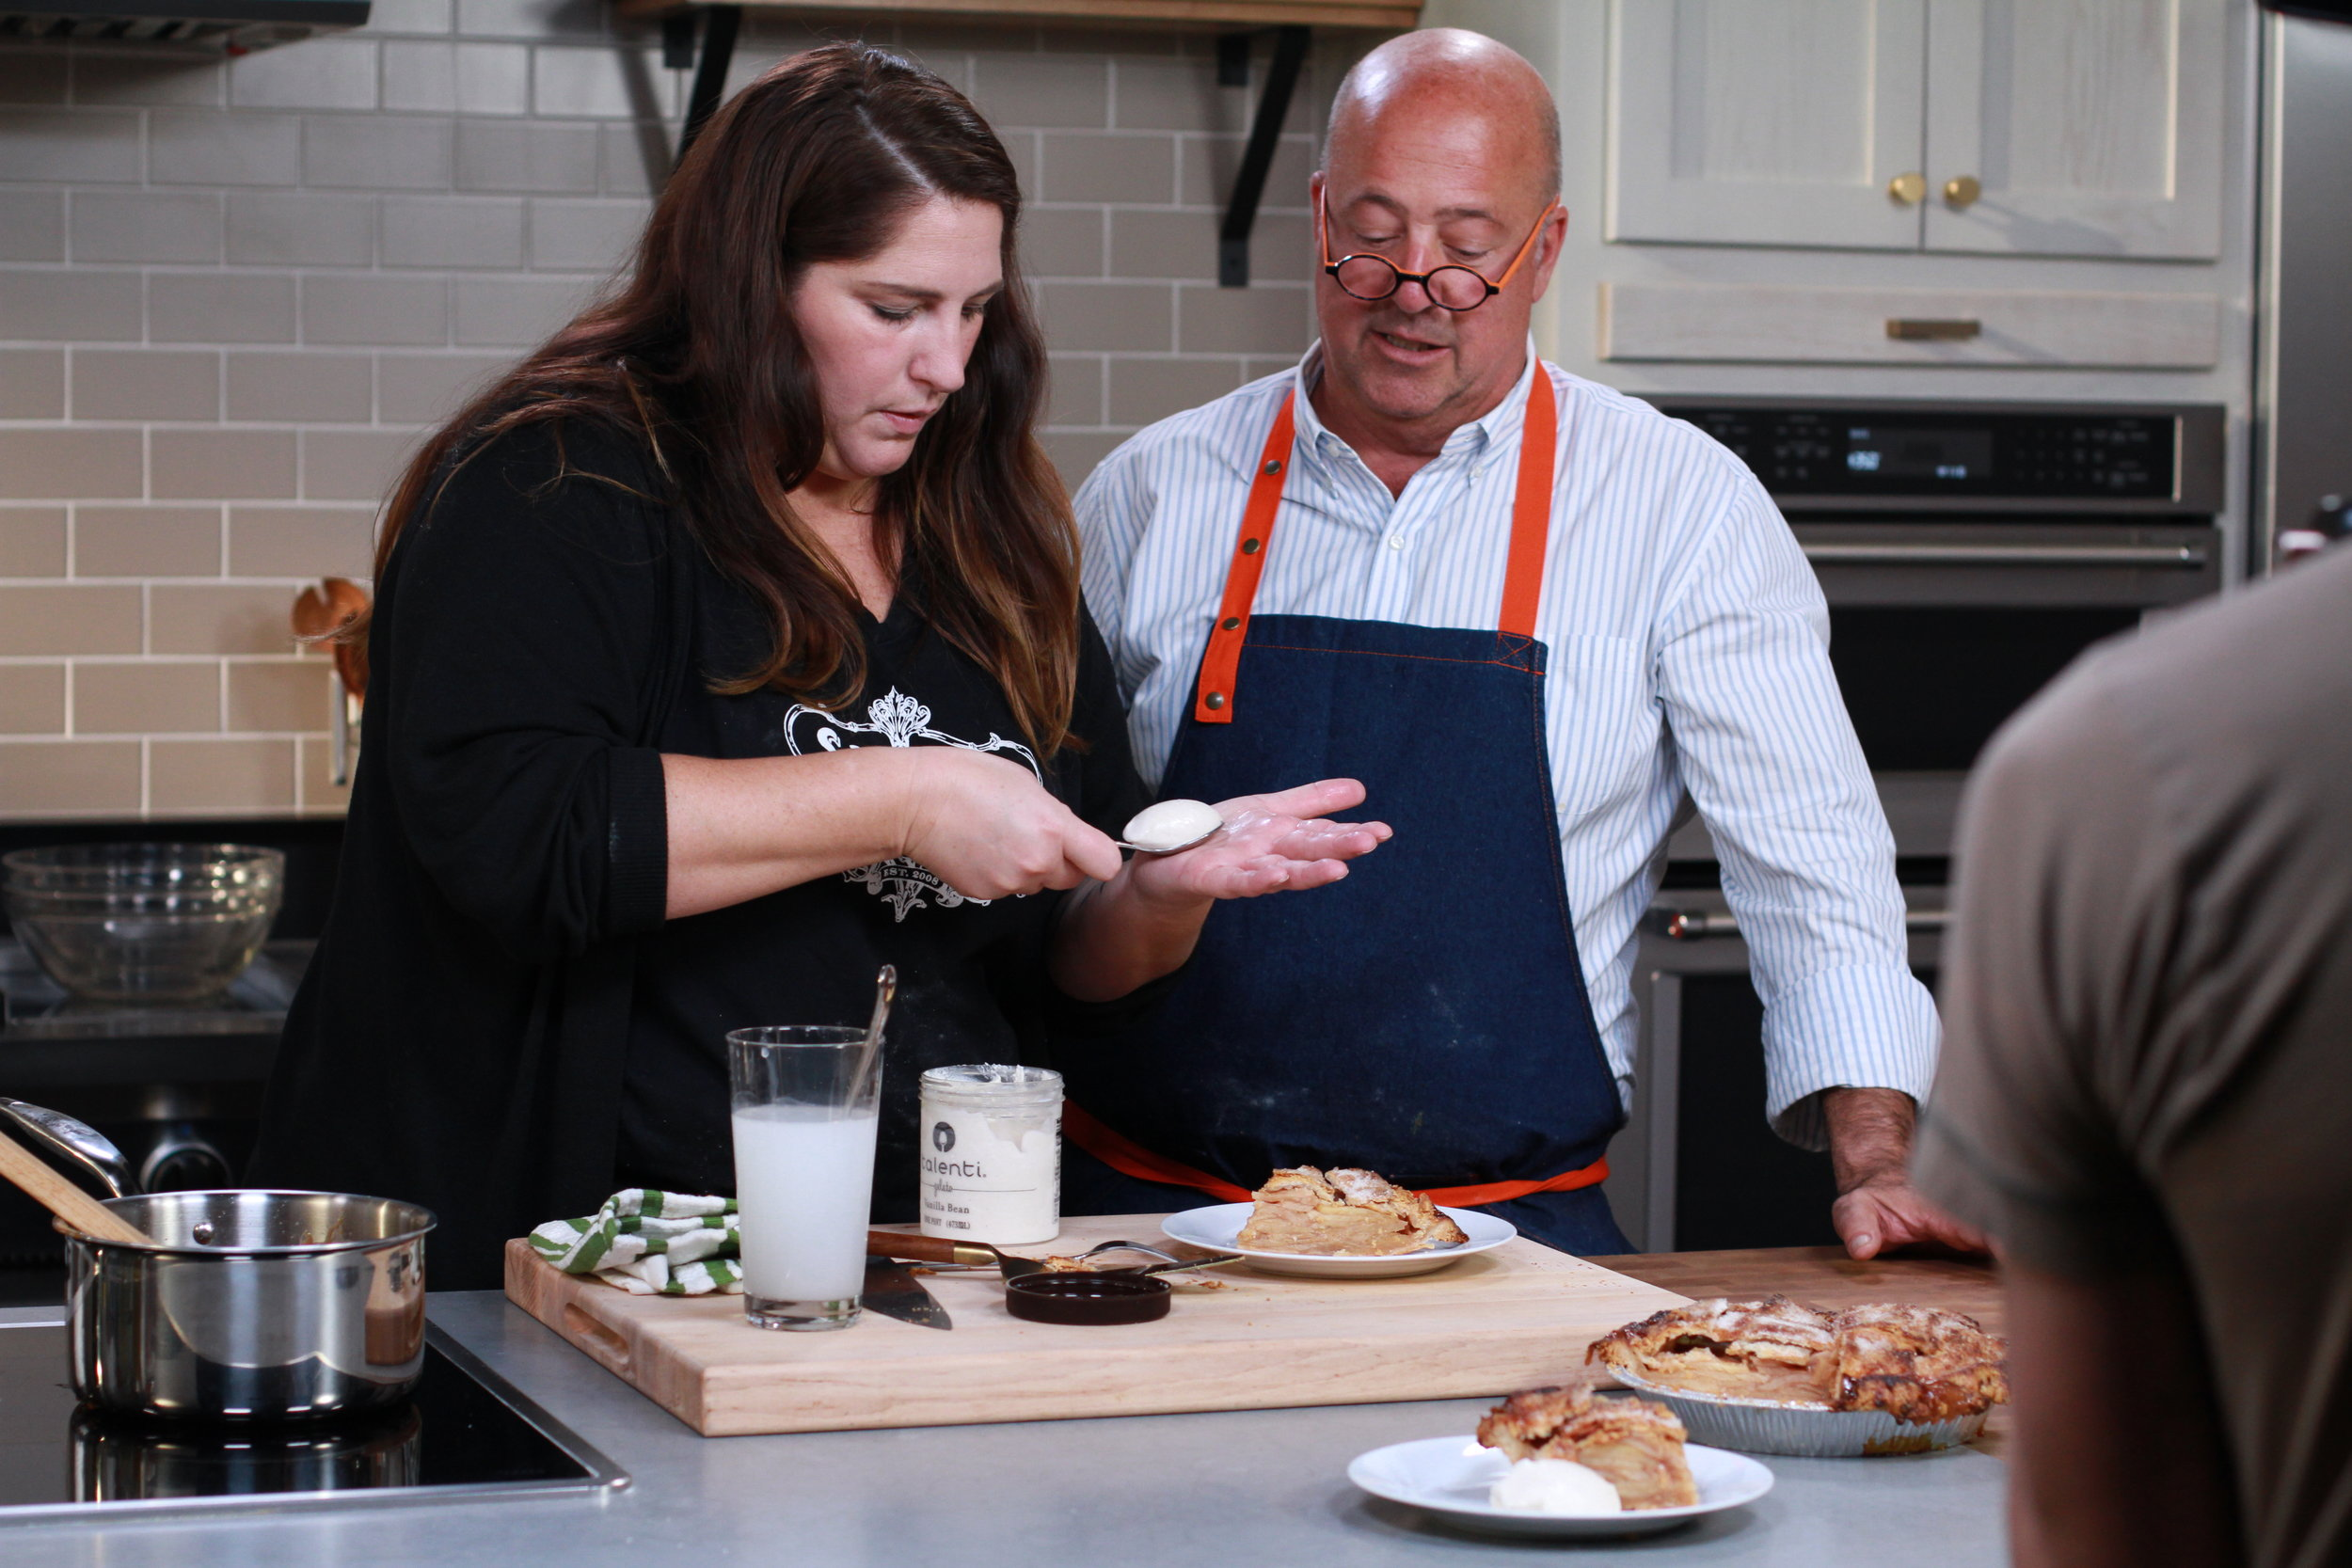 """Andrew Zimmern Cooks: Caramel Apple Pie with Michelle Gayer"